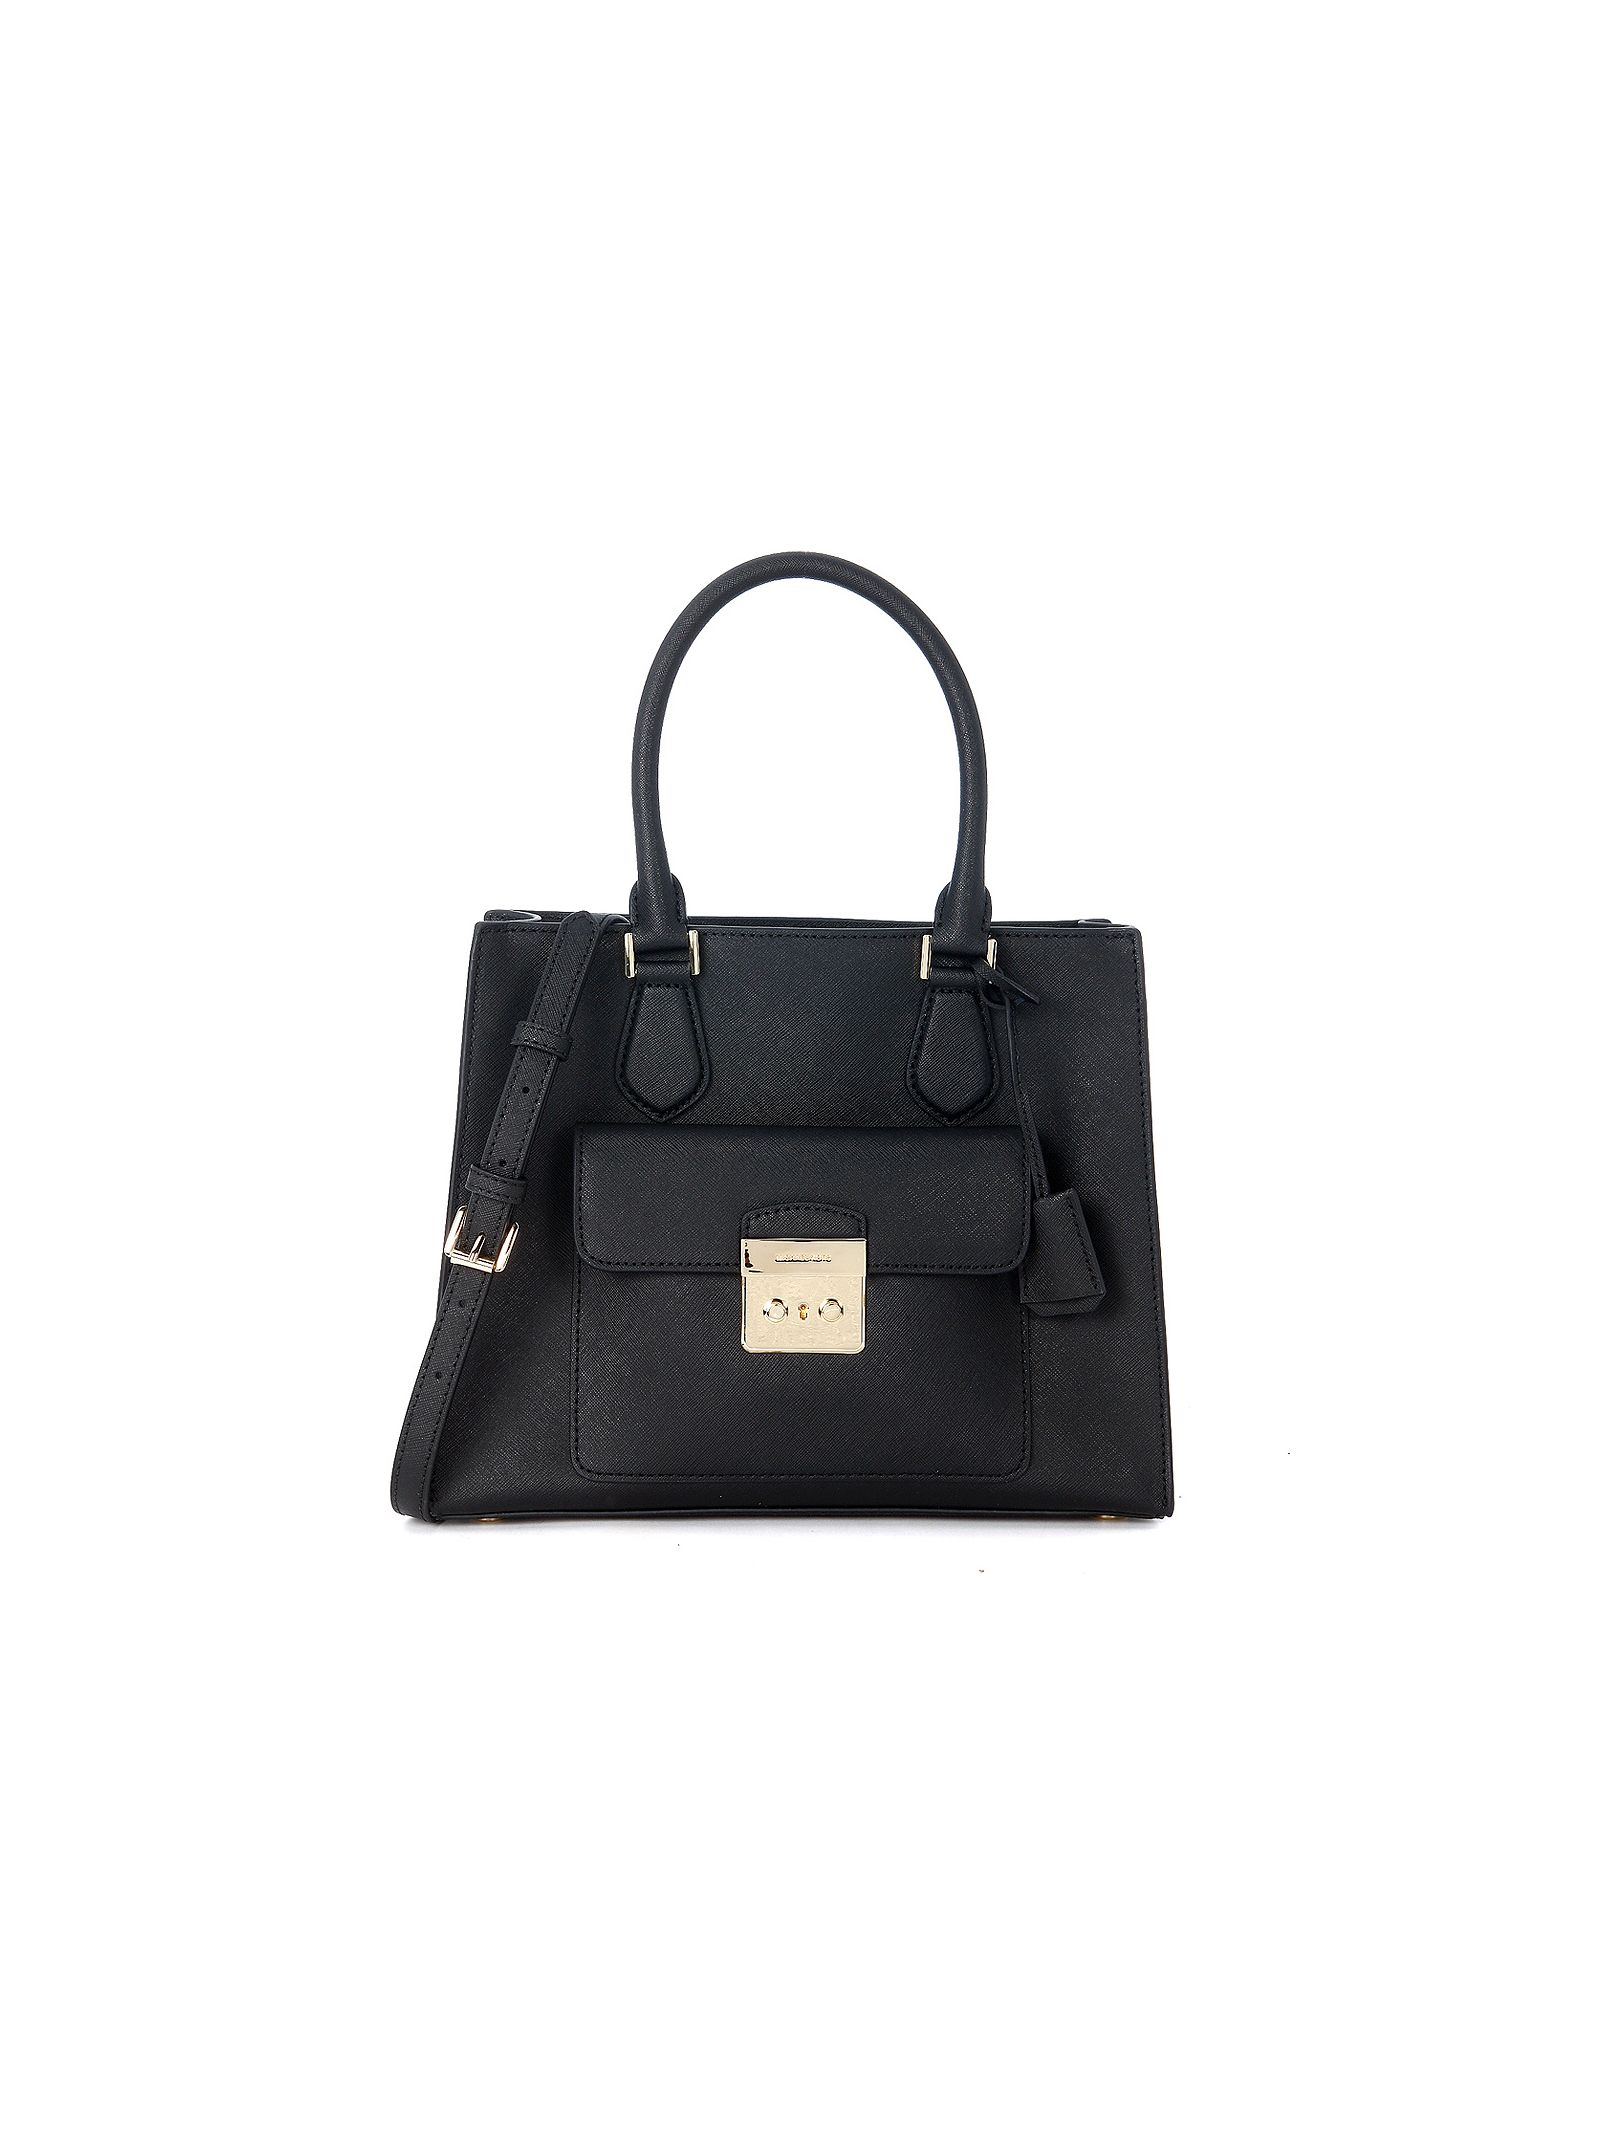 michael kors female  michael kors bridgette black leather handbag